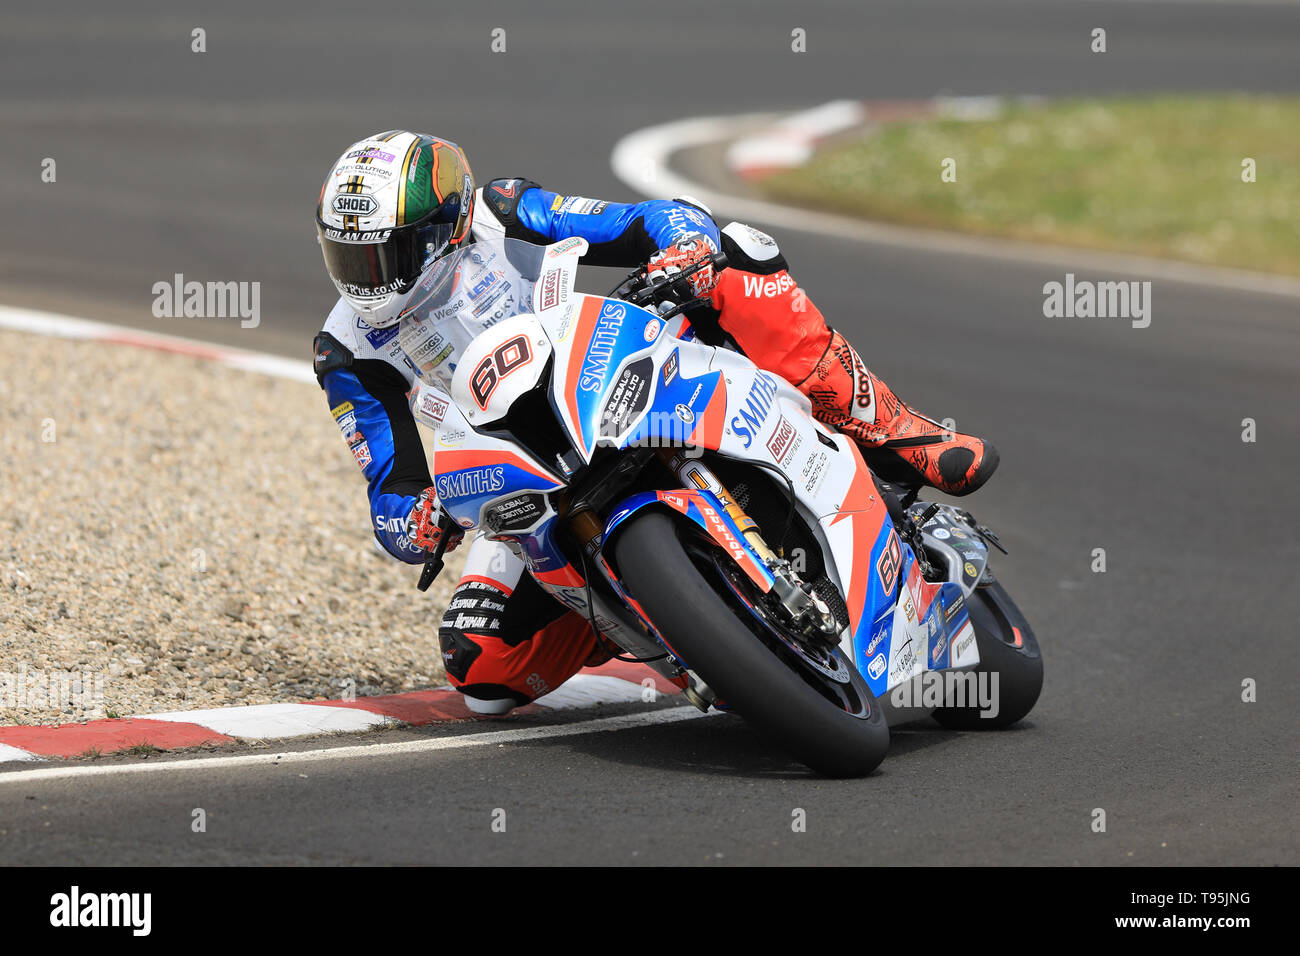 Portrush, Northern Ireland. 16th May, 2019. International North West 200 Motorcycle road racing, Thursday practice and evening racing; Peter Hickman on the Smiths Racing BMW during the SuperBike qualifying session Credit: Action Plus Sports/Alamy Live News - Stock Image